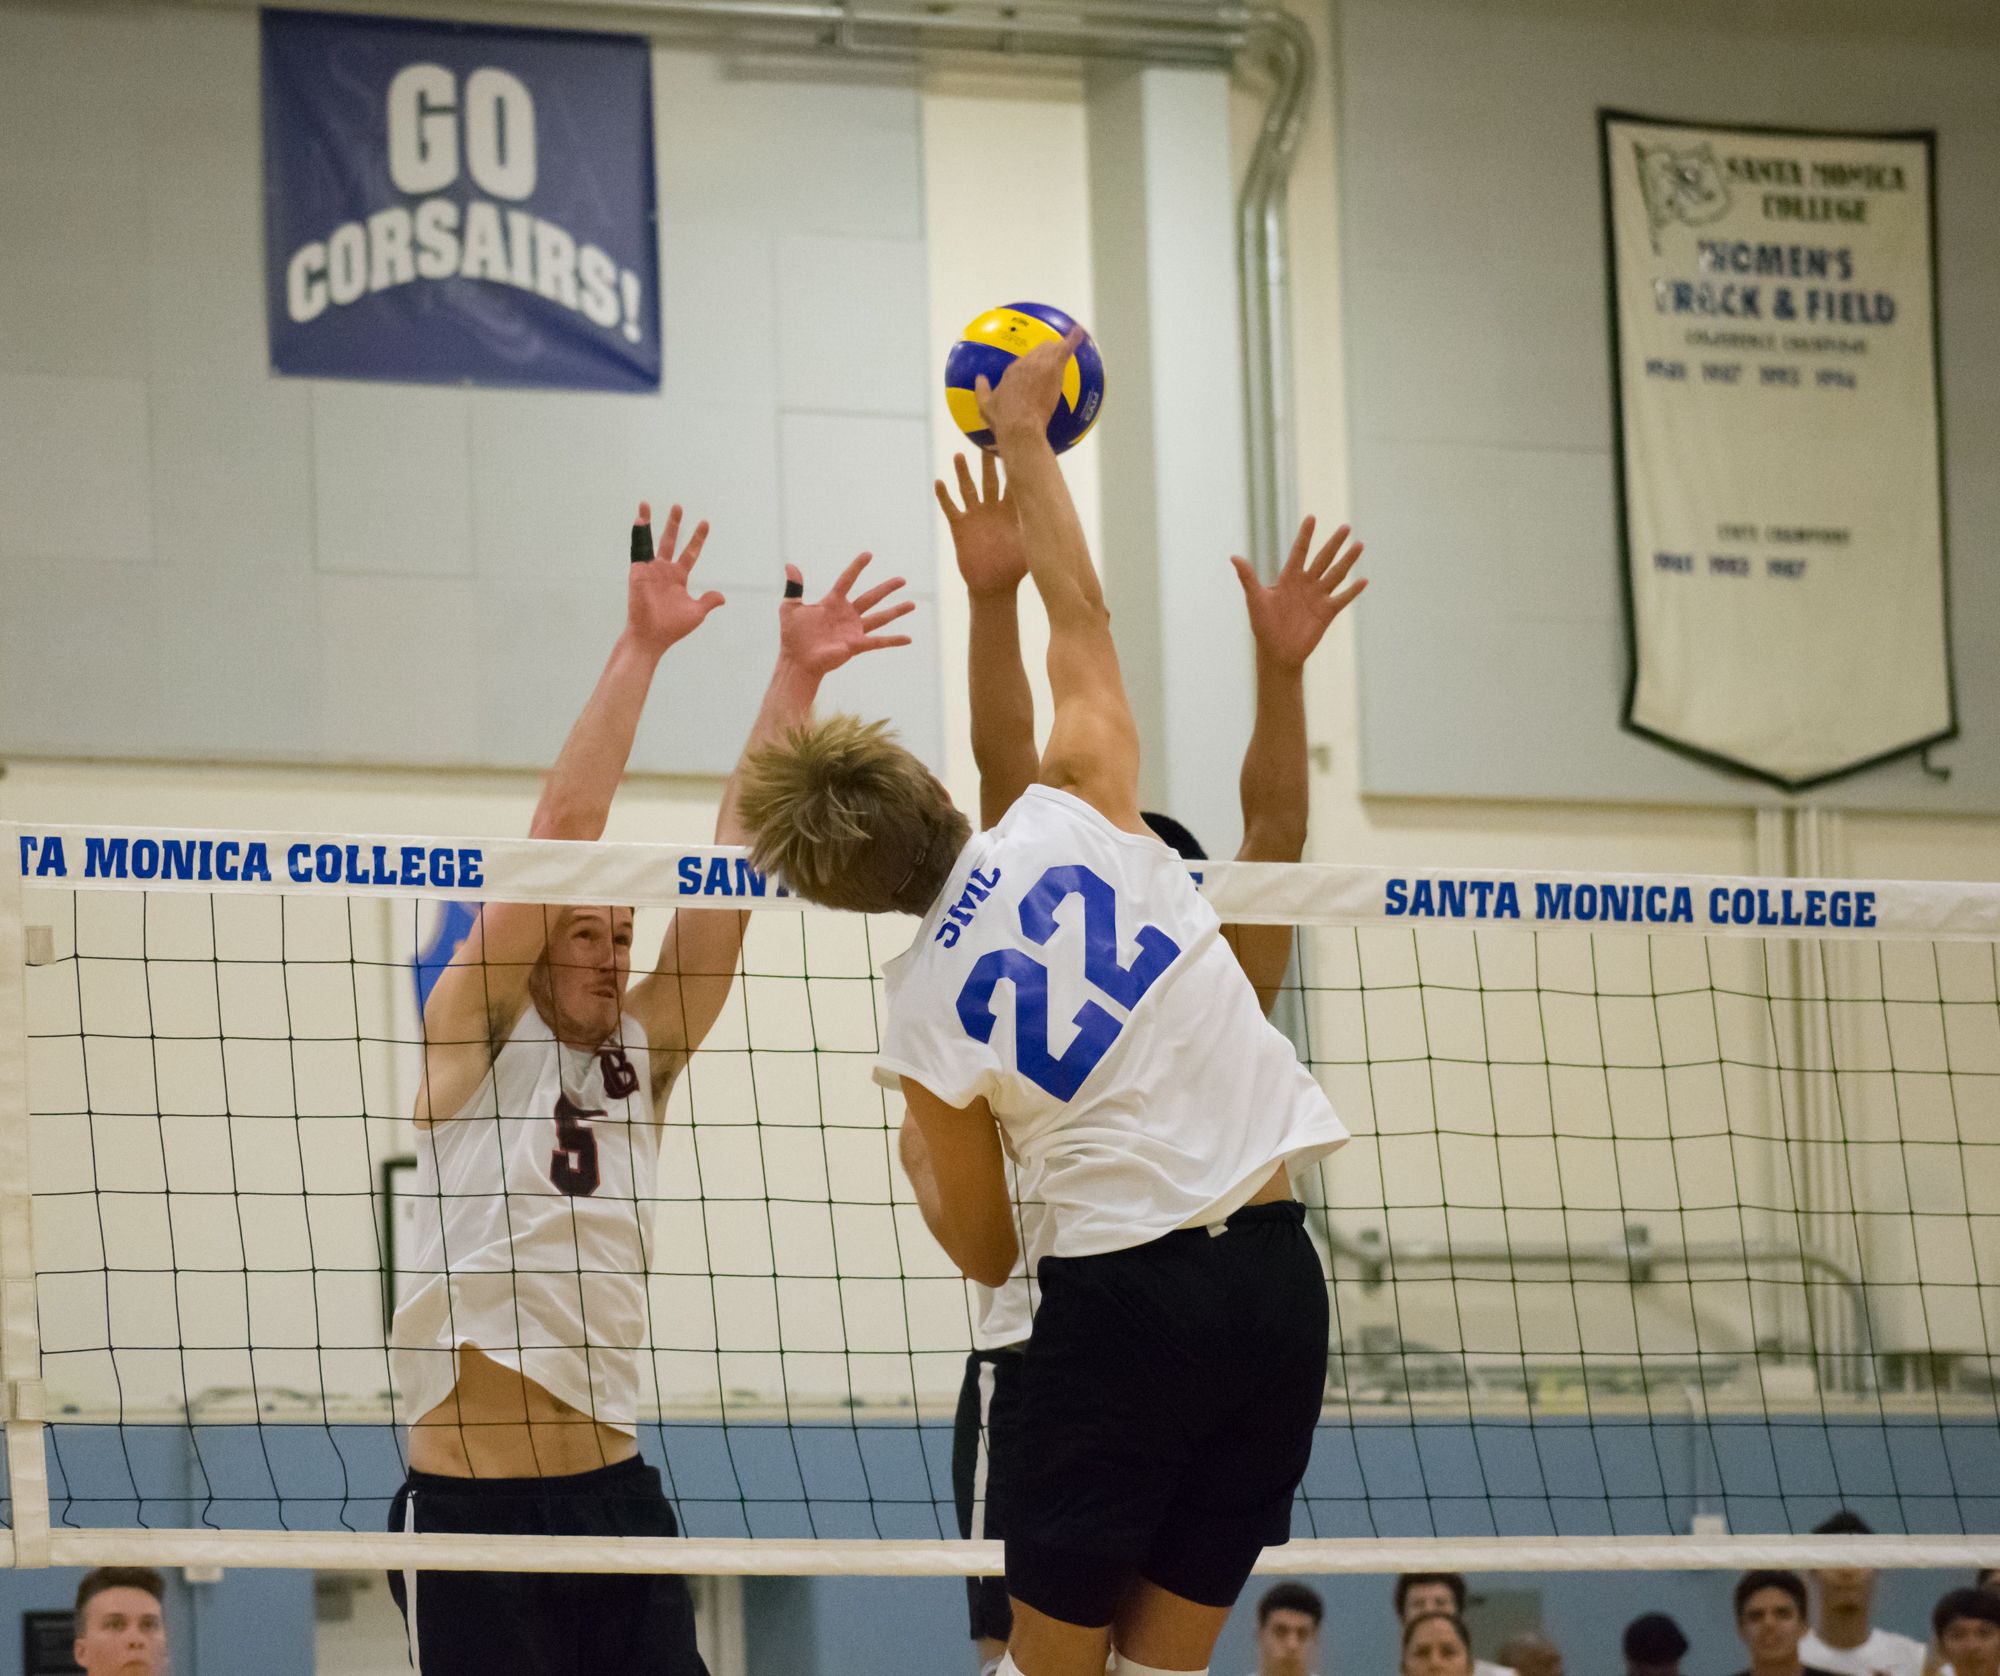 Santa Monica Corsairs sophomore and outside hitter Stanton Smith (#22) spikes the ball against the Long Beach City College Vikings during their final home game of the season on Wednesday, April 12, 2018 in the Santa Monica College gym at Santa Monica, California. The game ended in a 3-1 loss for the Corsairs, giving them a 7-7 overall rating for the season with one game left. (Ethan Lauren/Corsair Photo)